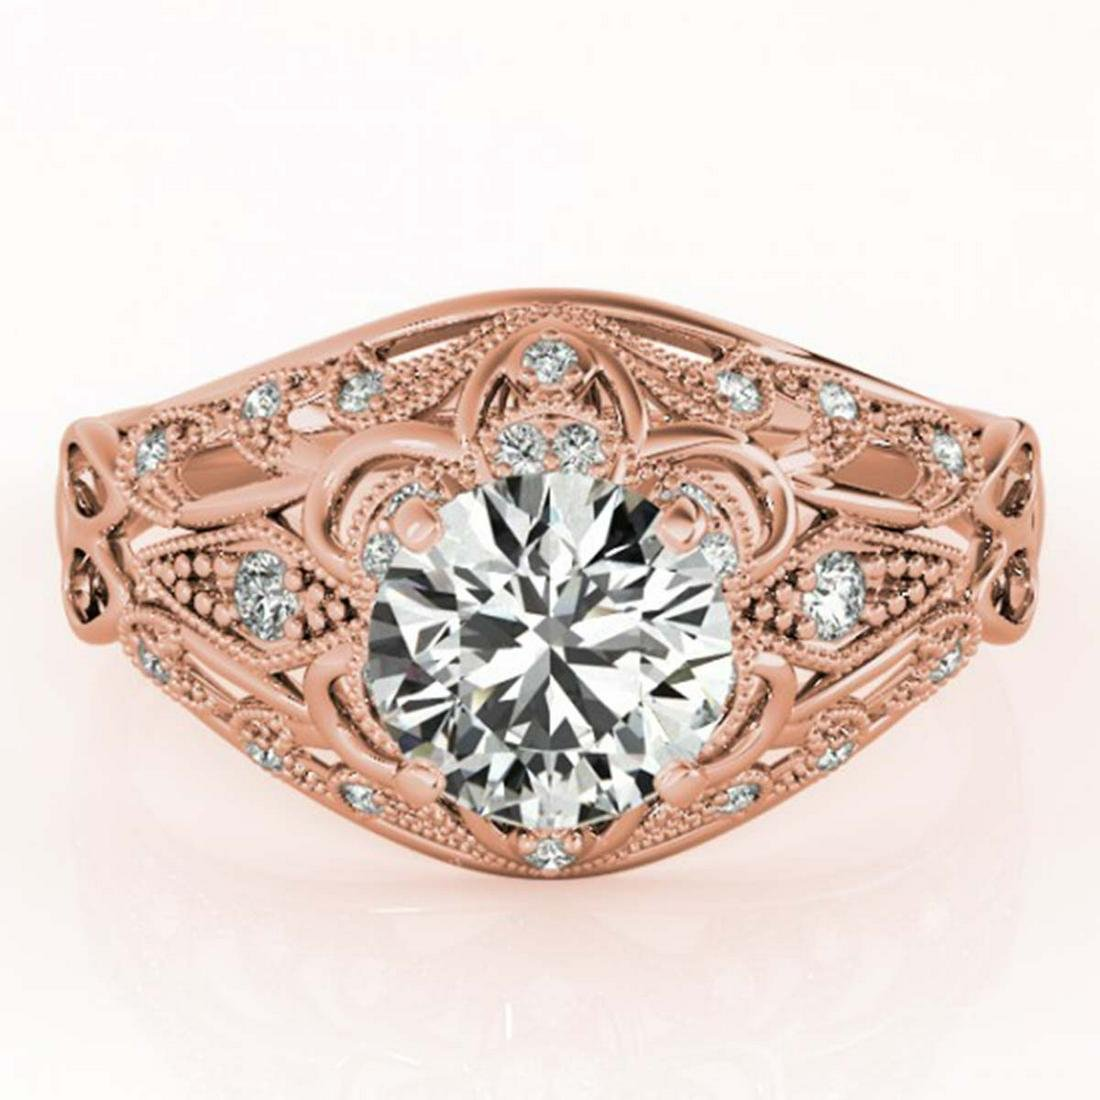 1.12 ctw VS/SI Diamond Ring 18K Rose Gold - REF-164F6N